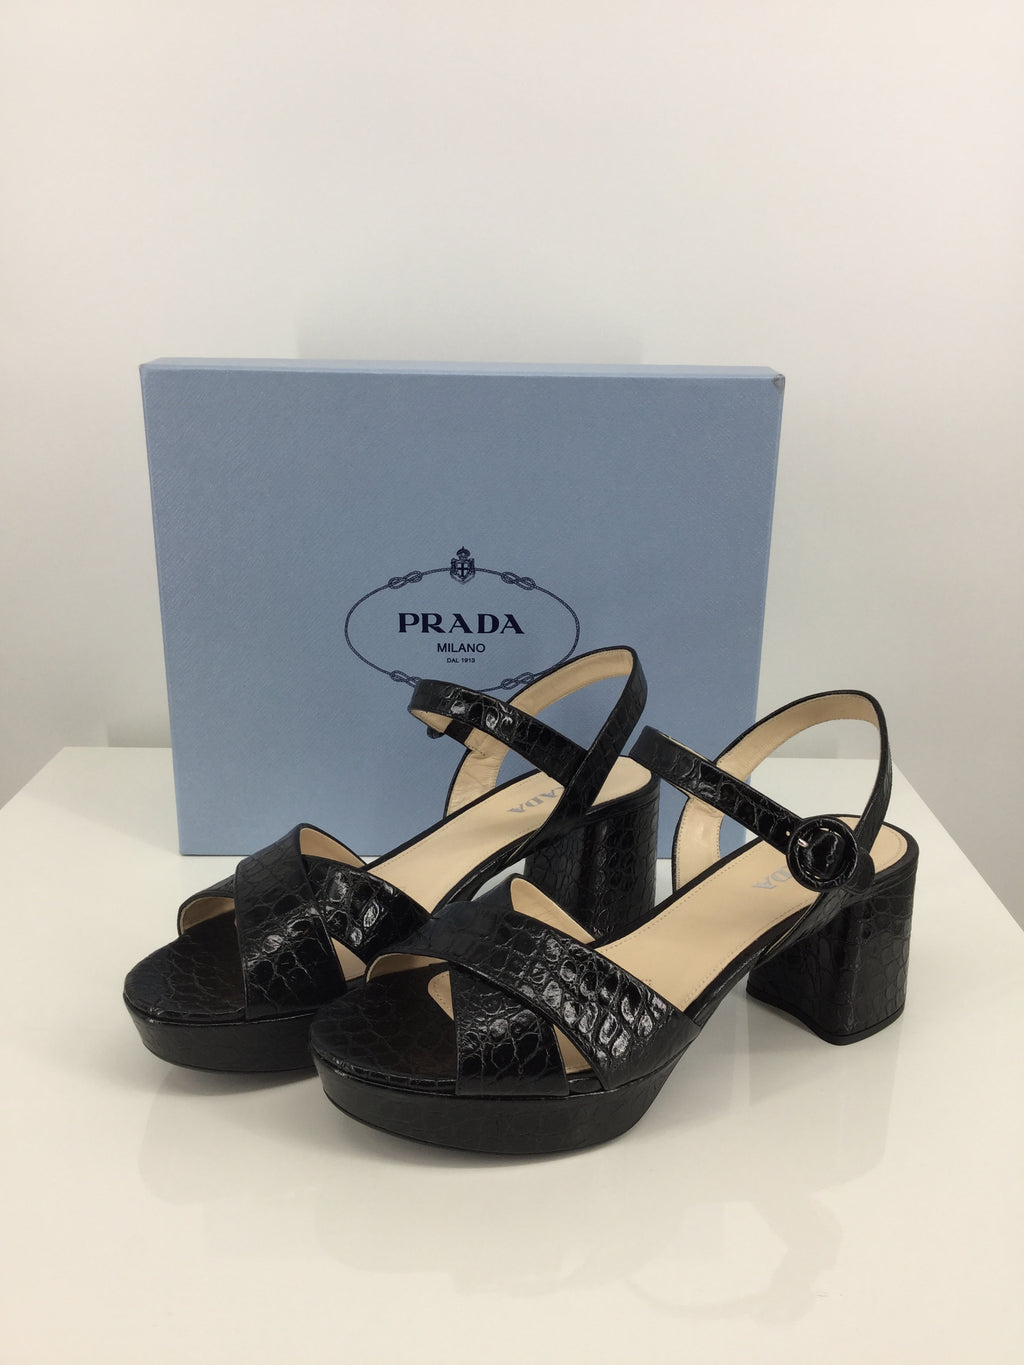 Prada Shoes High Heel